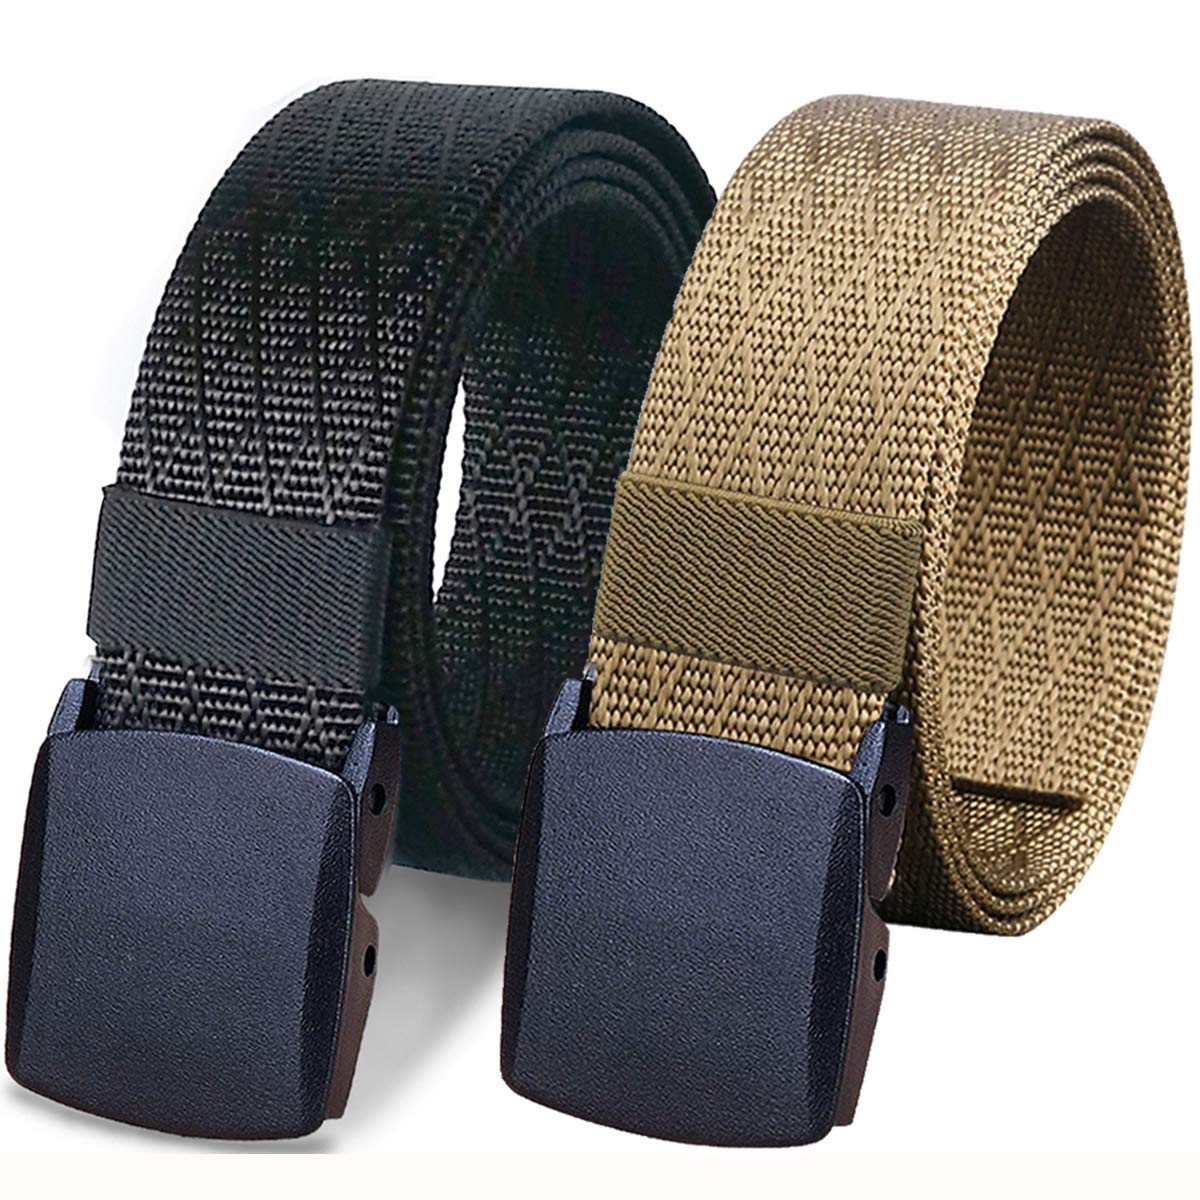 WYuZe 2 Pack Nylon Belt, Outdoor Military Web Belt Men's Tactical Webbing Belt (bbrown) by WYuZe (Image #1)